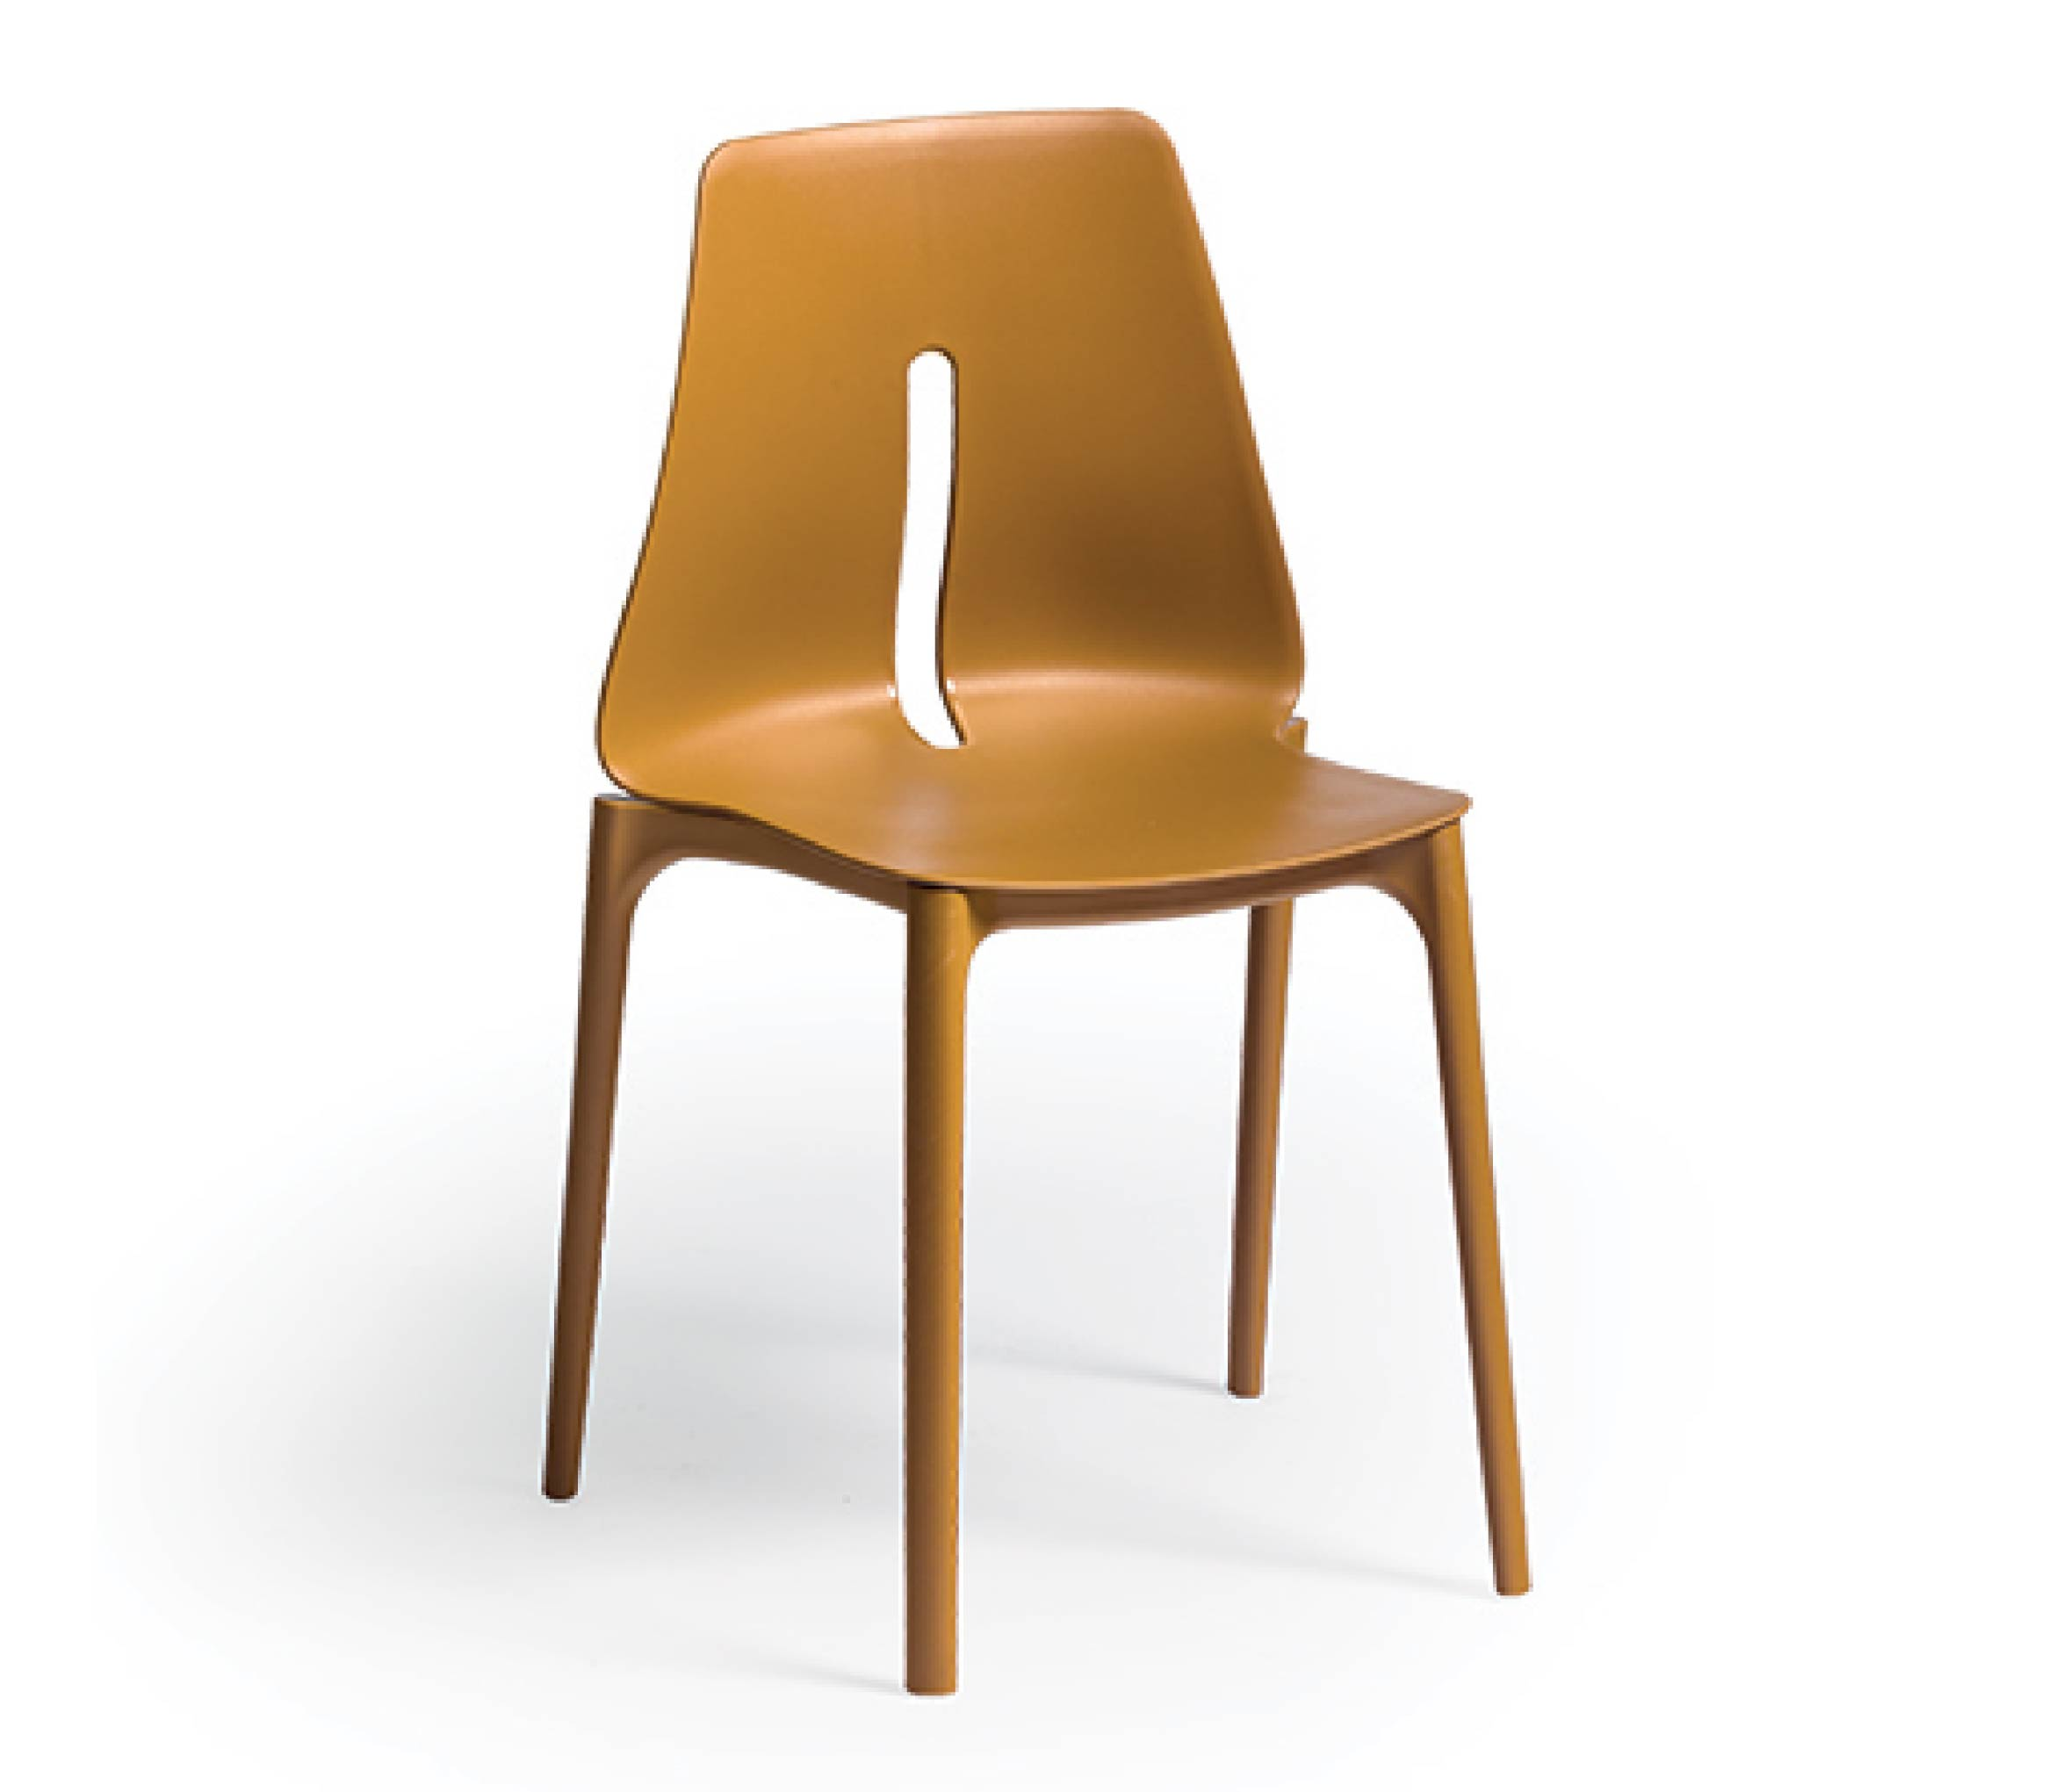 2_TENSAI_FURNITURE_OBLONG__plastic_chair_camel_color_in_white_background_153_005